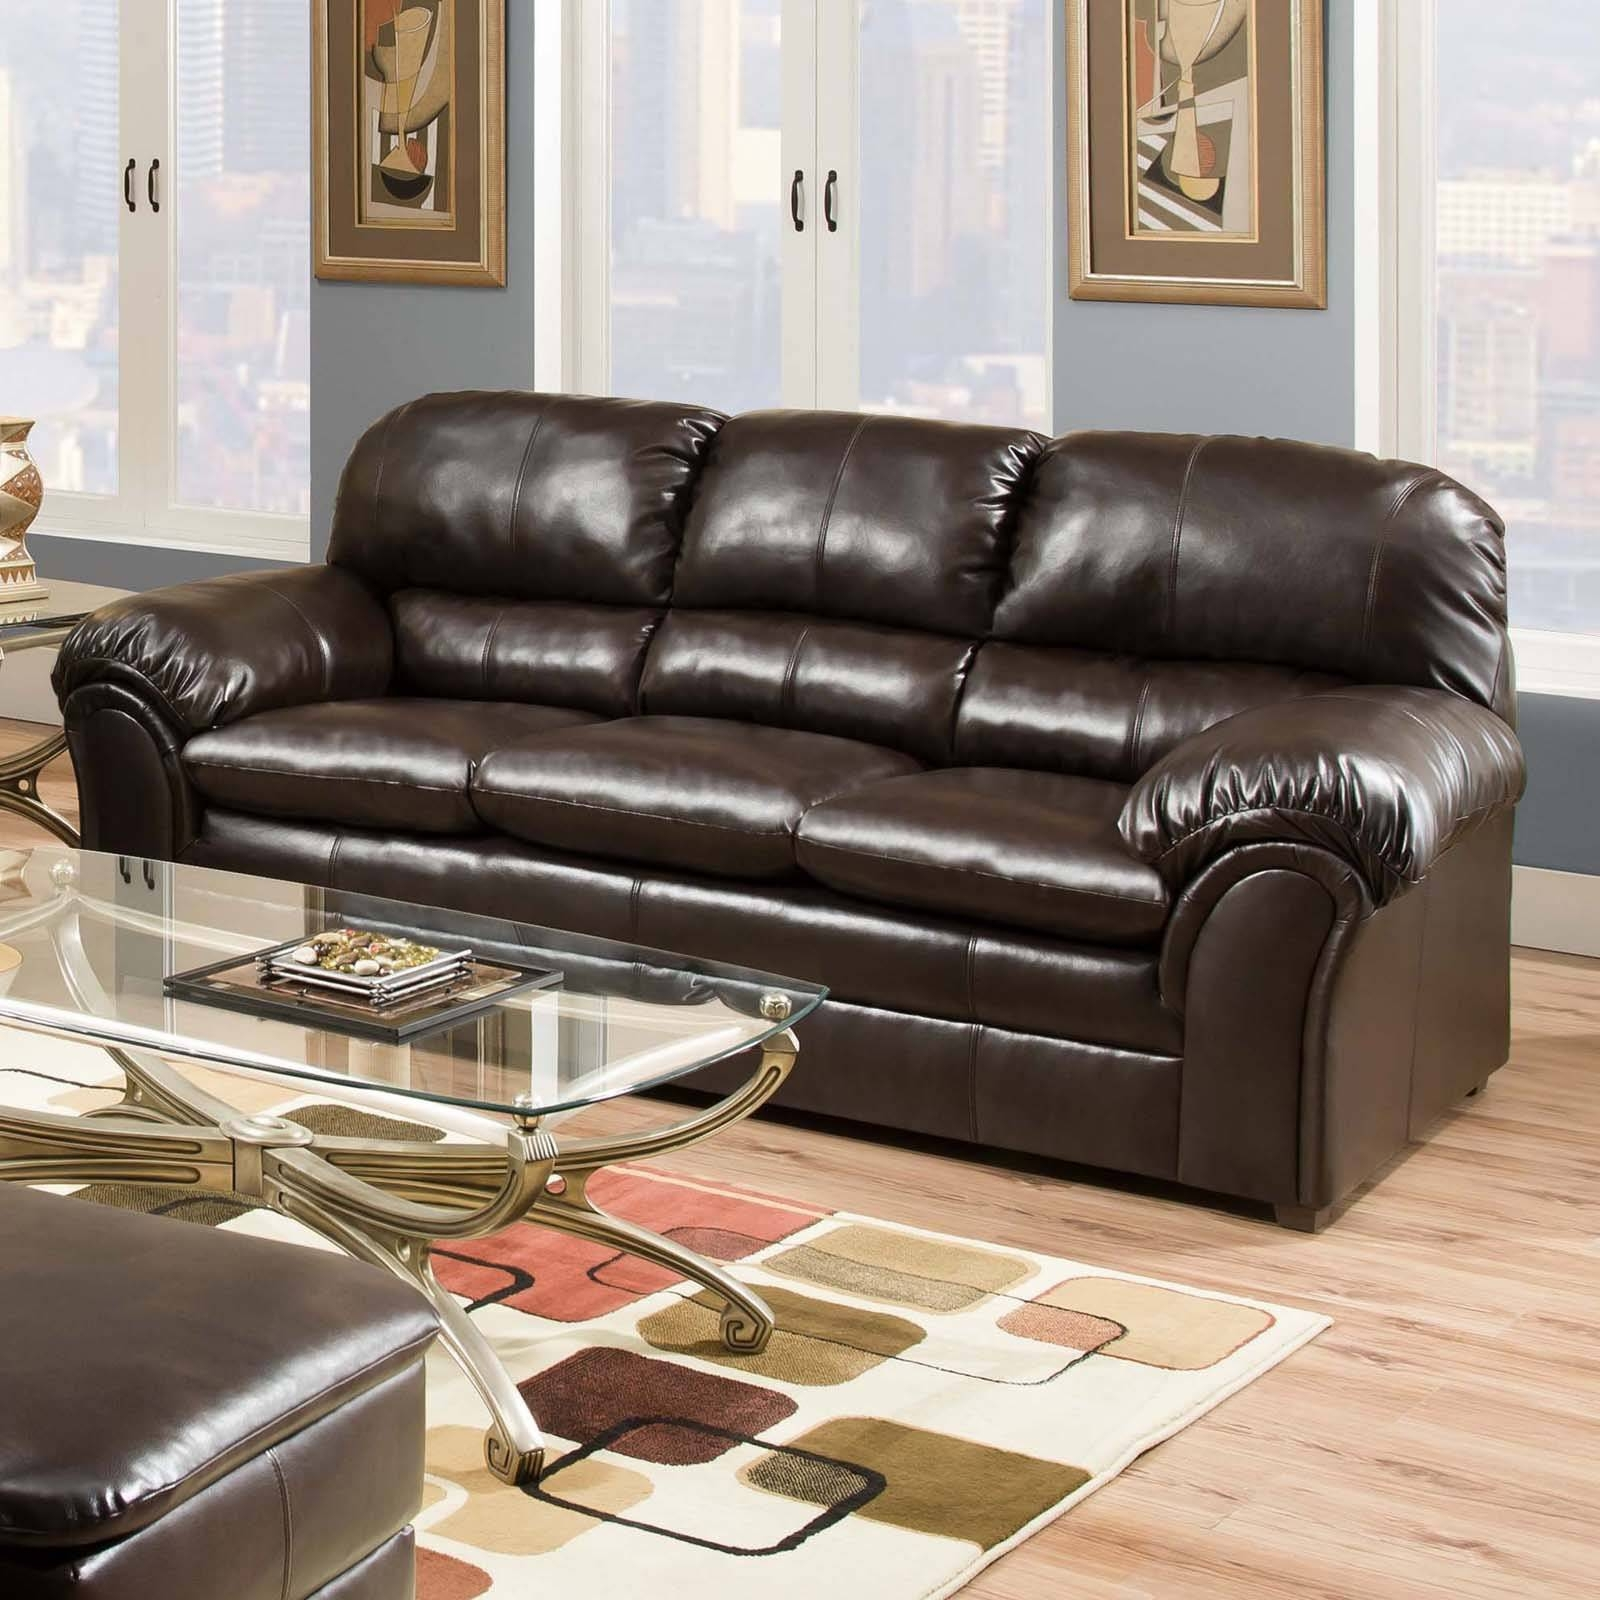 Simmons Upholstery Vintage Riverside Bonded Leather Sofa - Walmart inside Simmons Bonded Leather Sofas (Image 14 of 15)